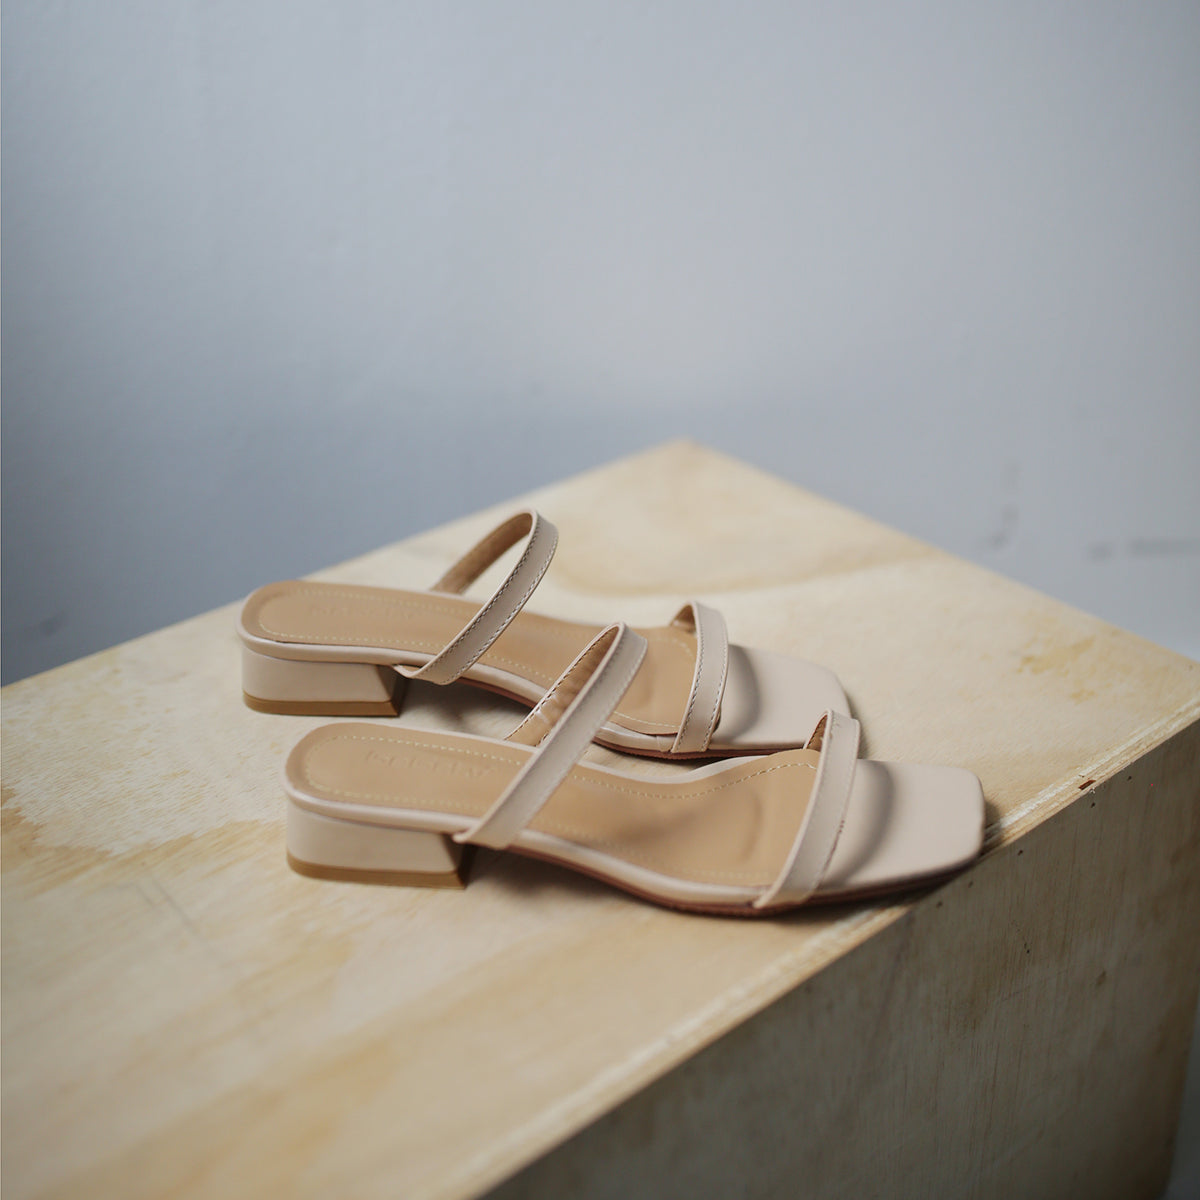 Jenn Double Strap Sandals (Nude)